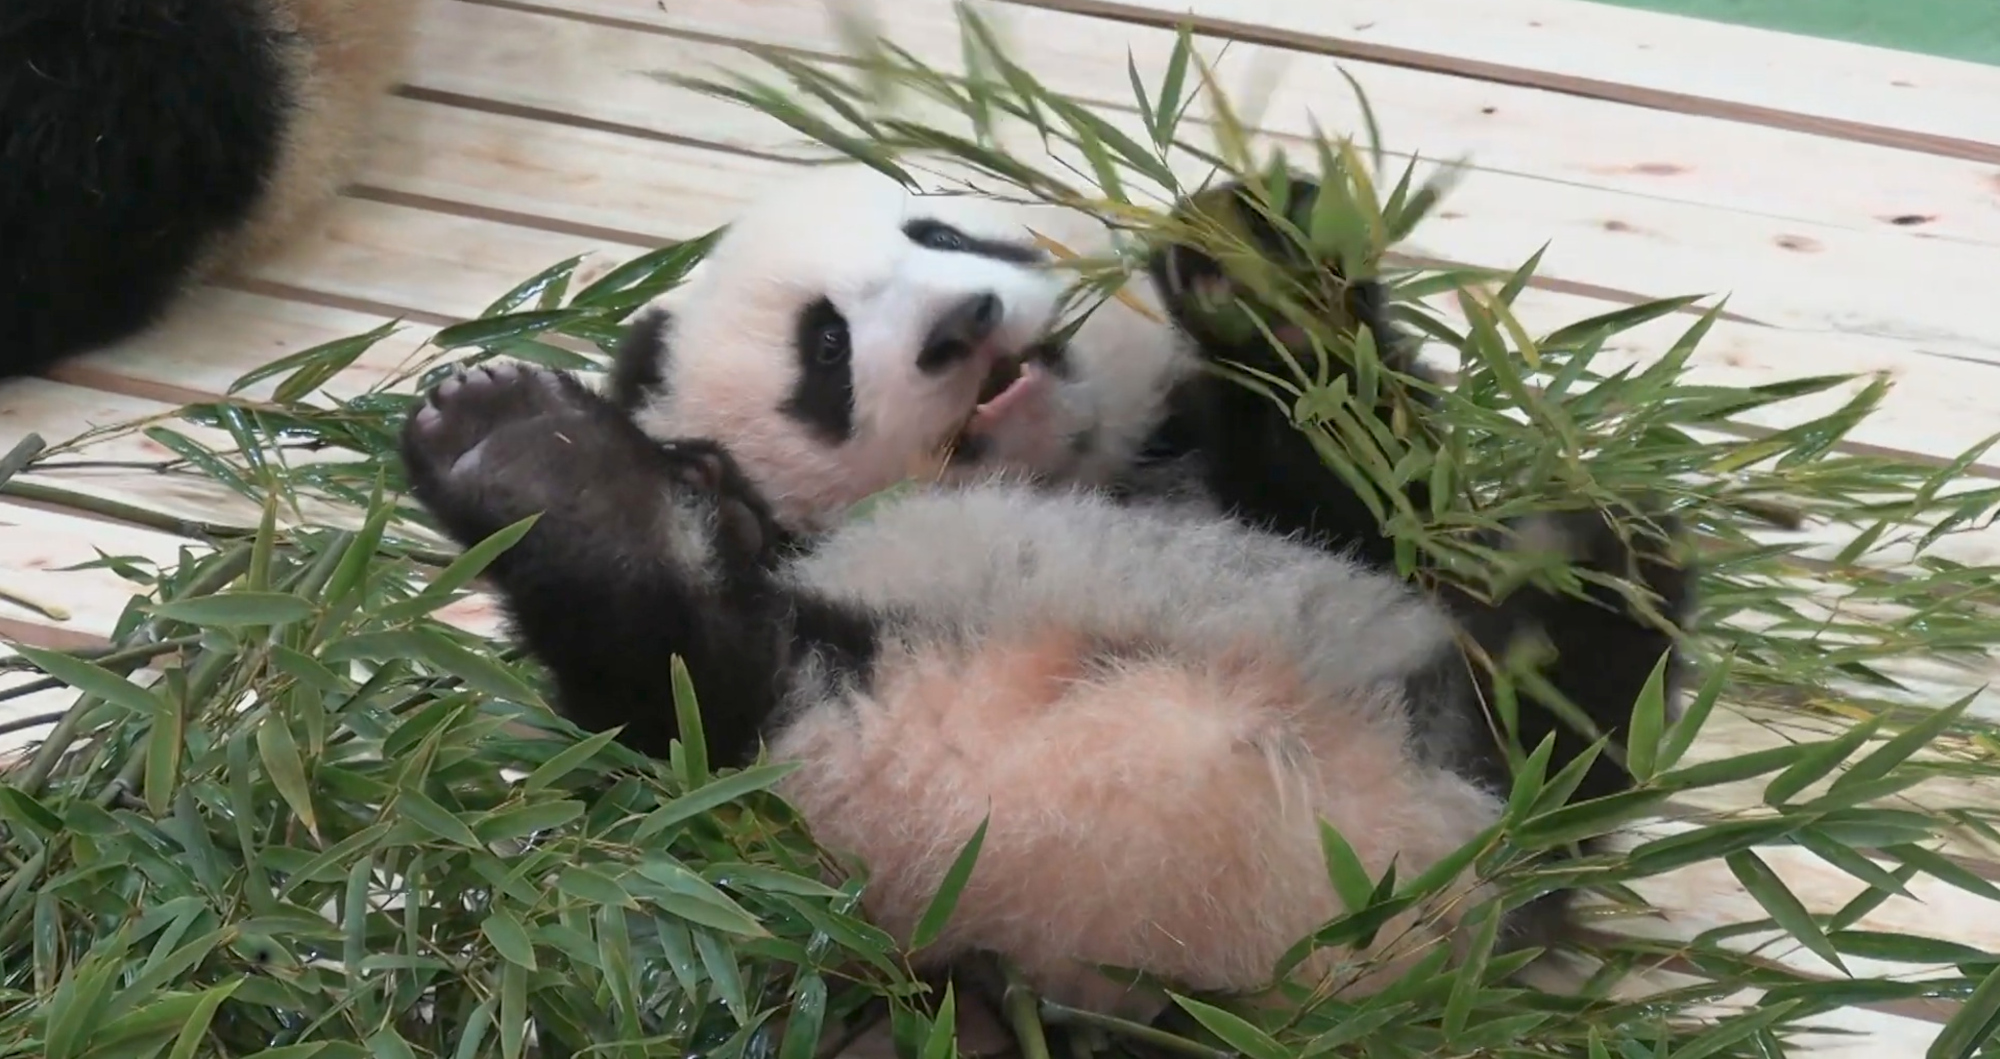 Panda Cub Wrestles With Its Mother